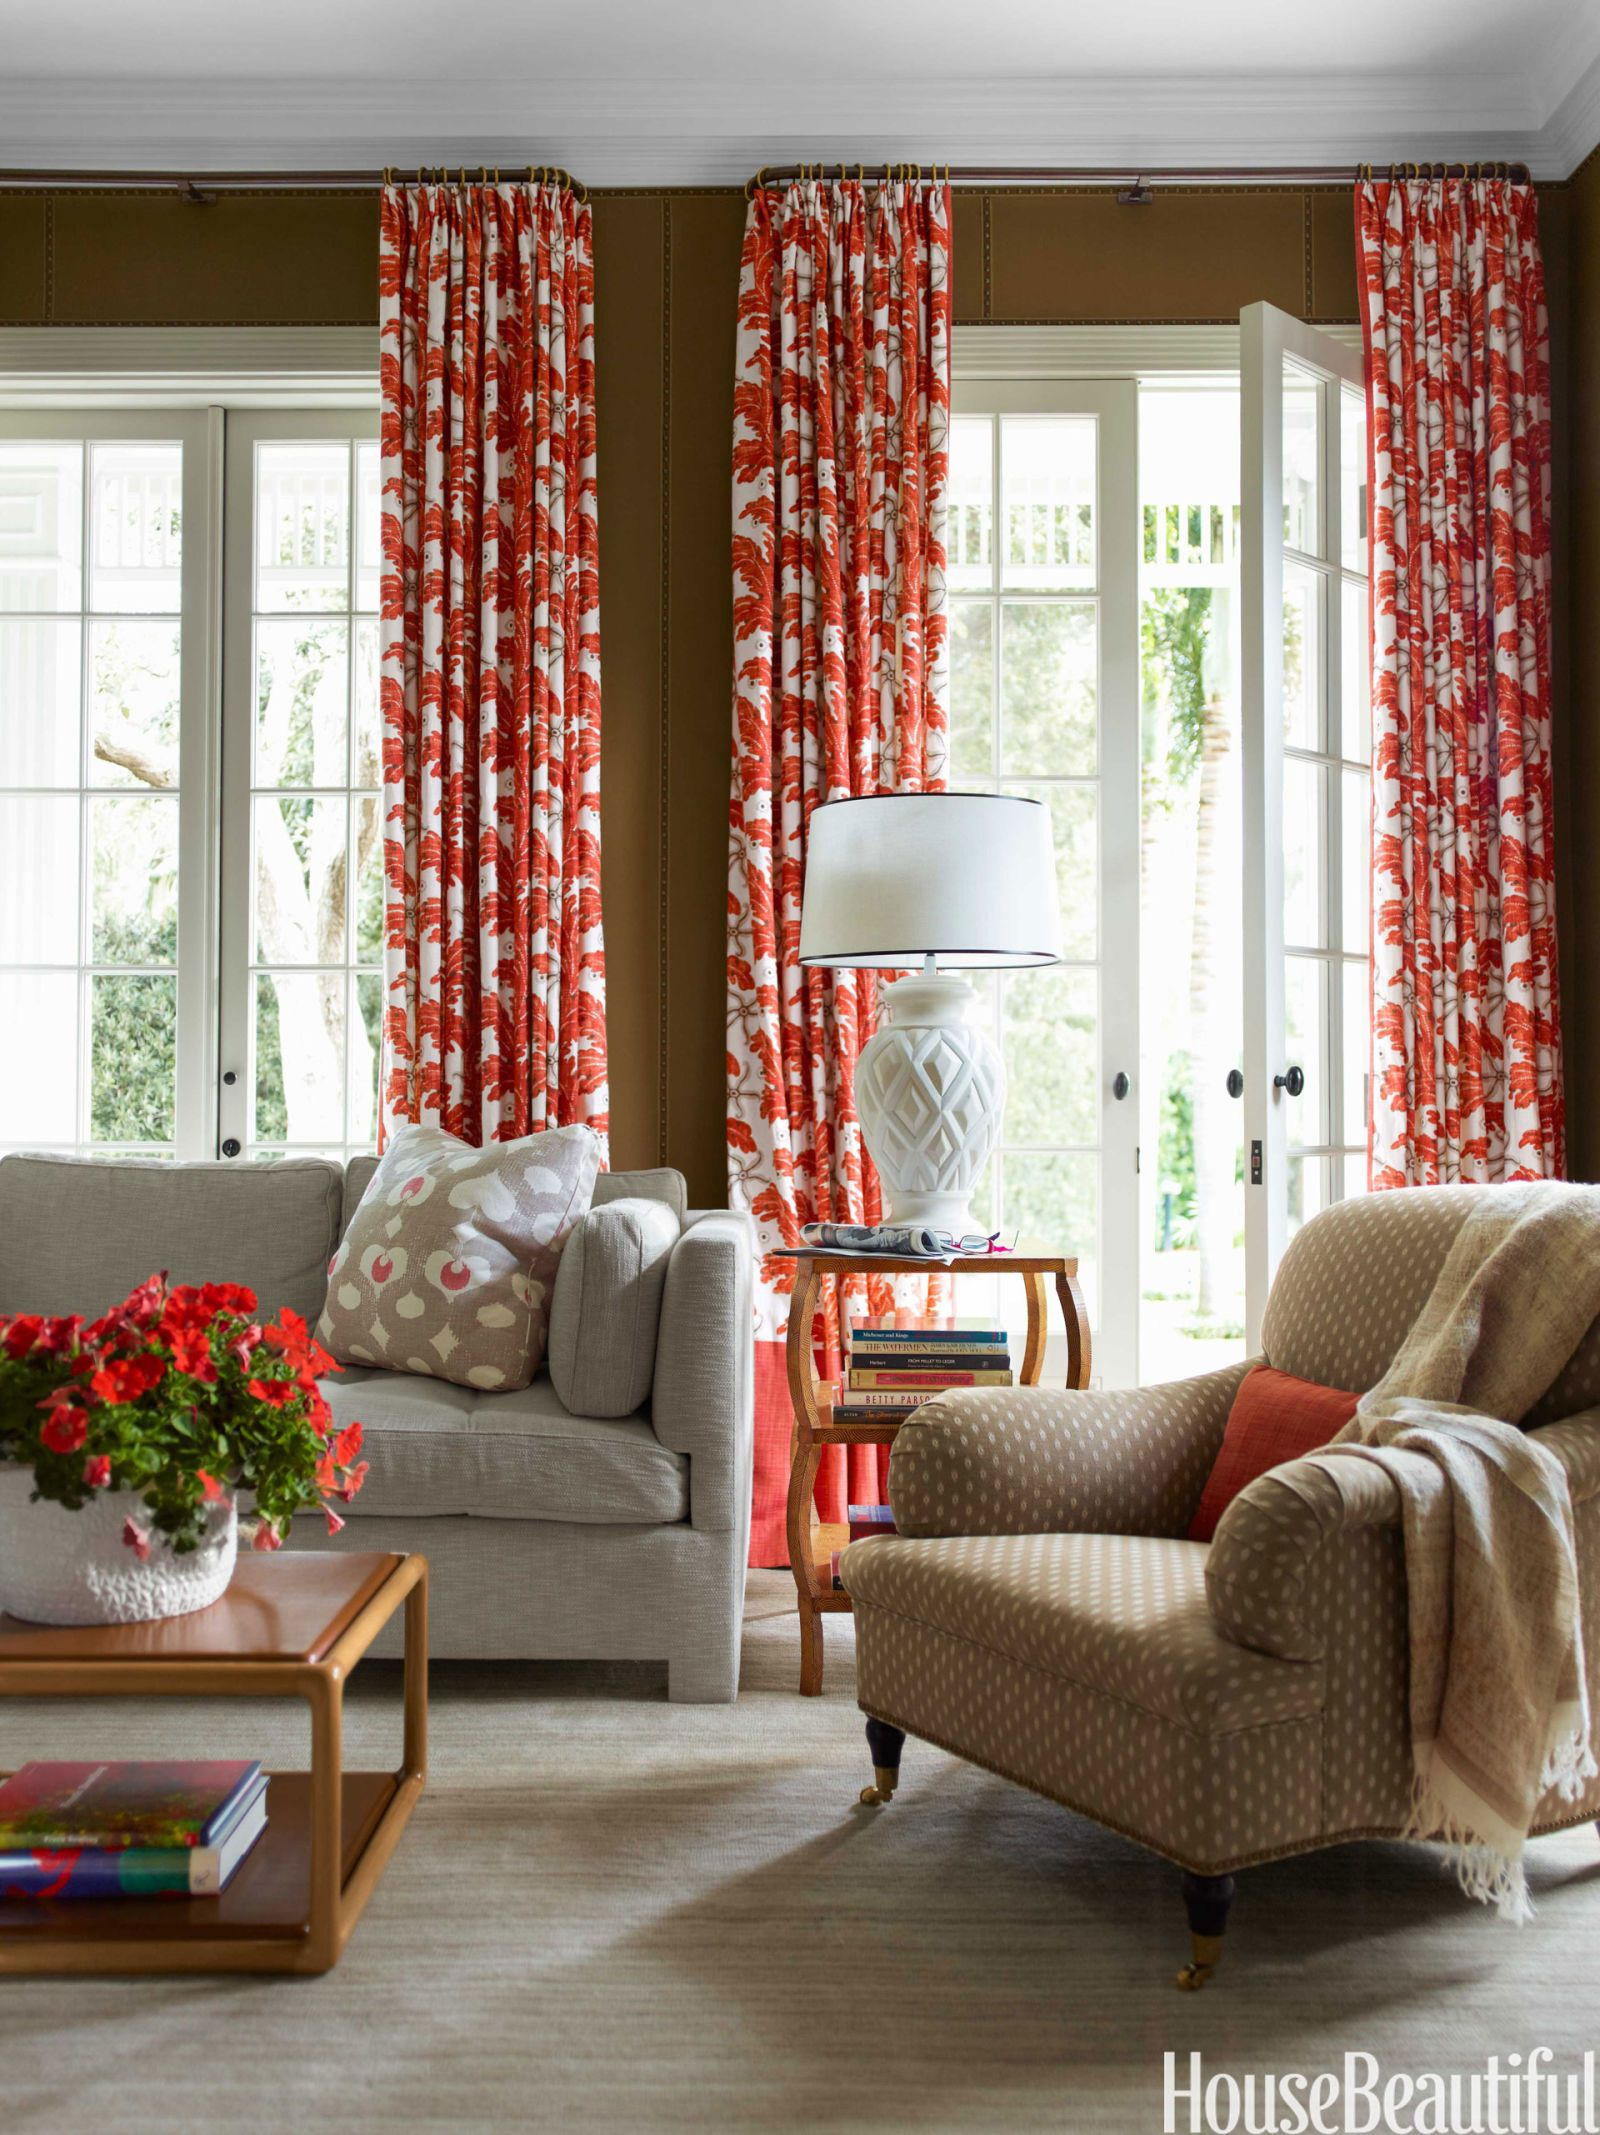 A Library With Tropical Style Window Treatments Living Room Dining Room Window Treatments Curtains Living Room #tropical #curtains #for #living #room